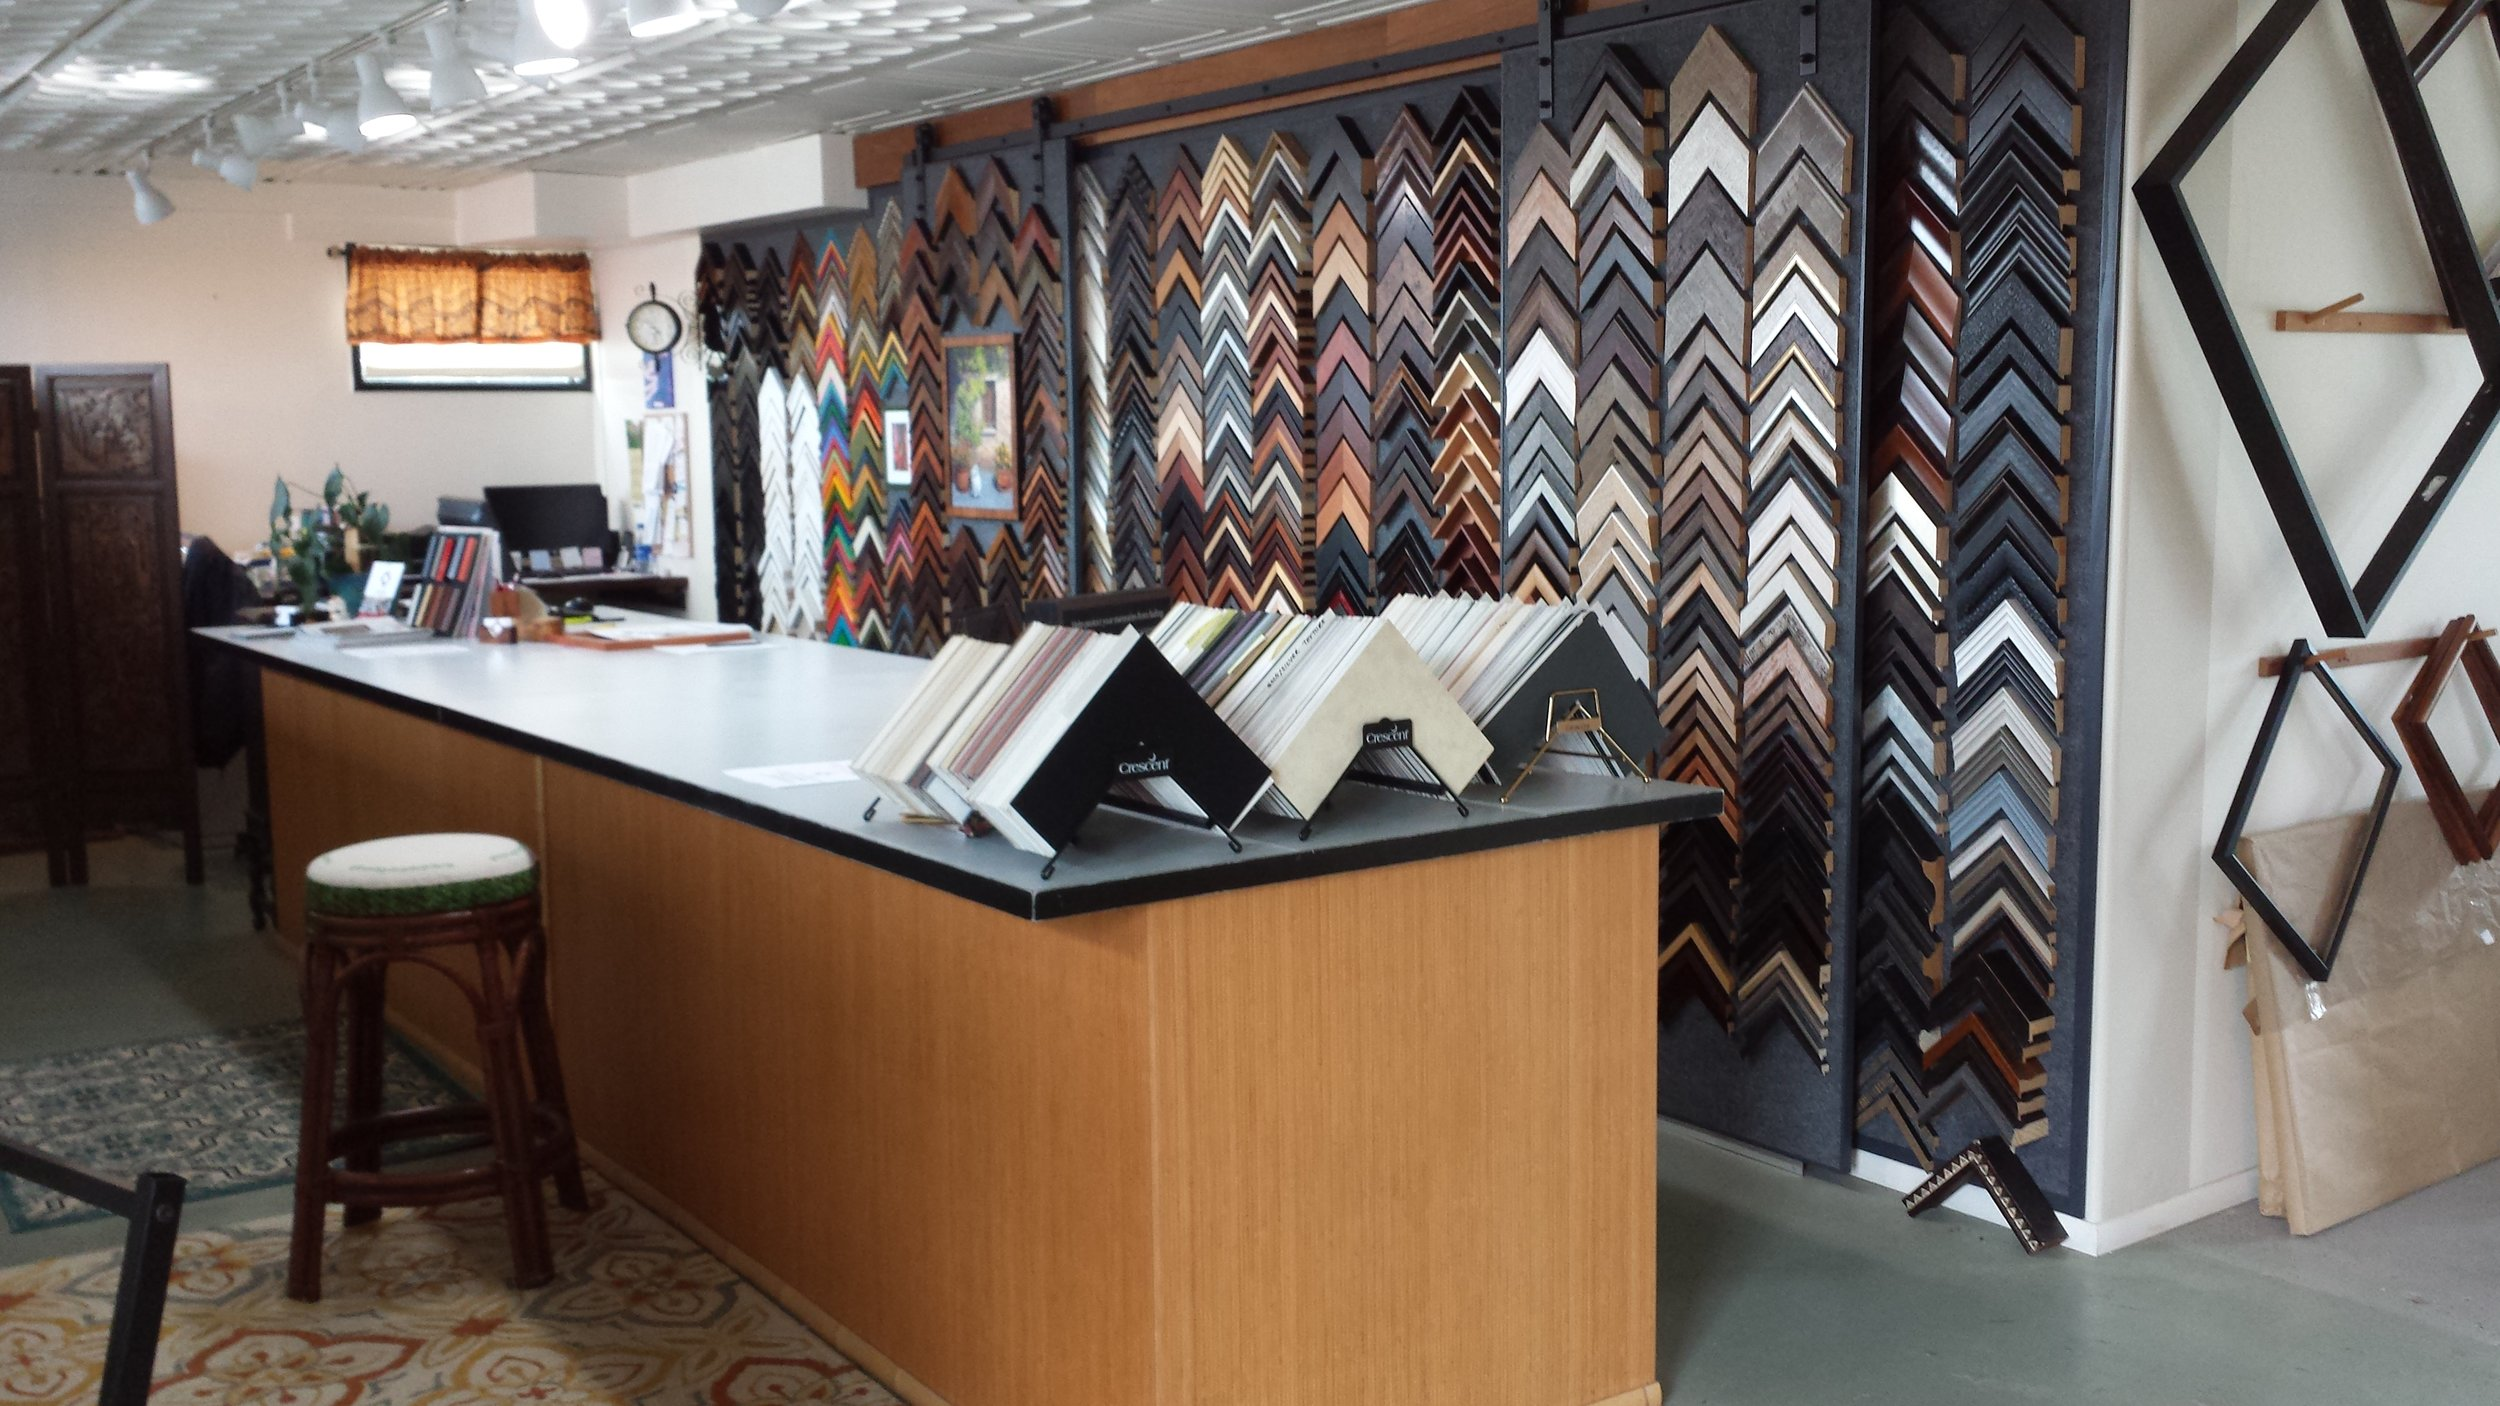 showroom - Extensive Moulding and Mat Samples. We now carry both Artique and Cresent matboard